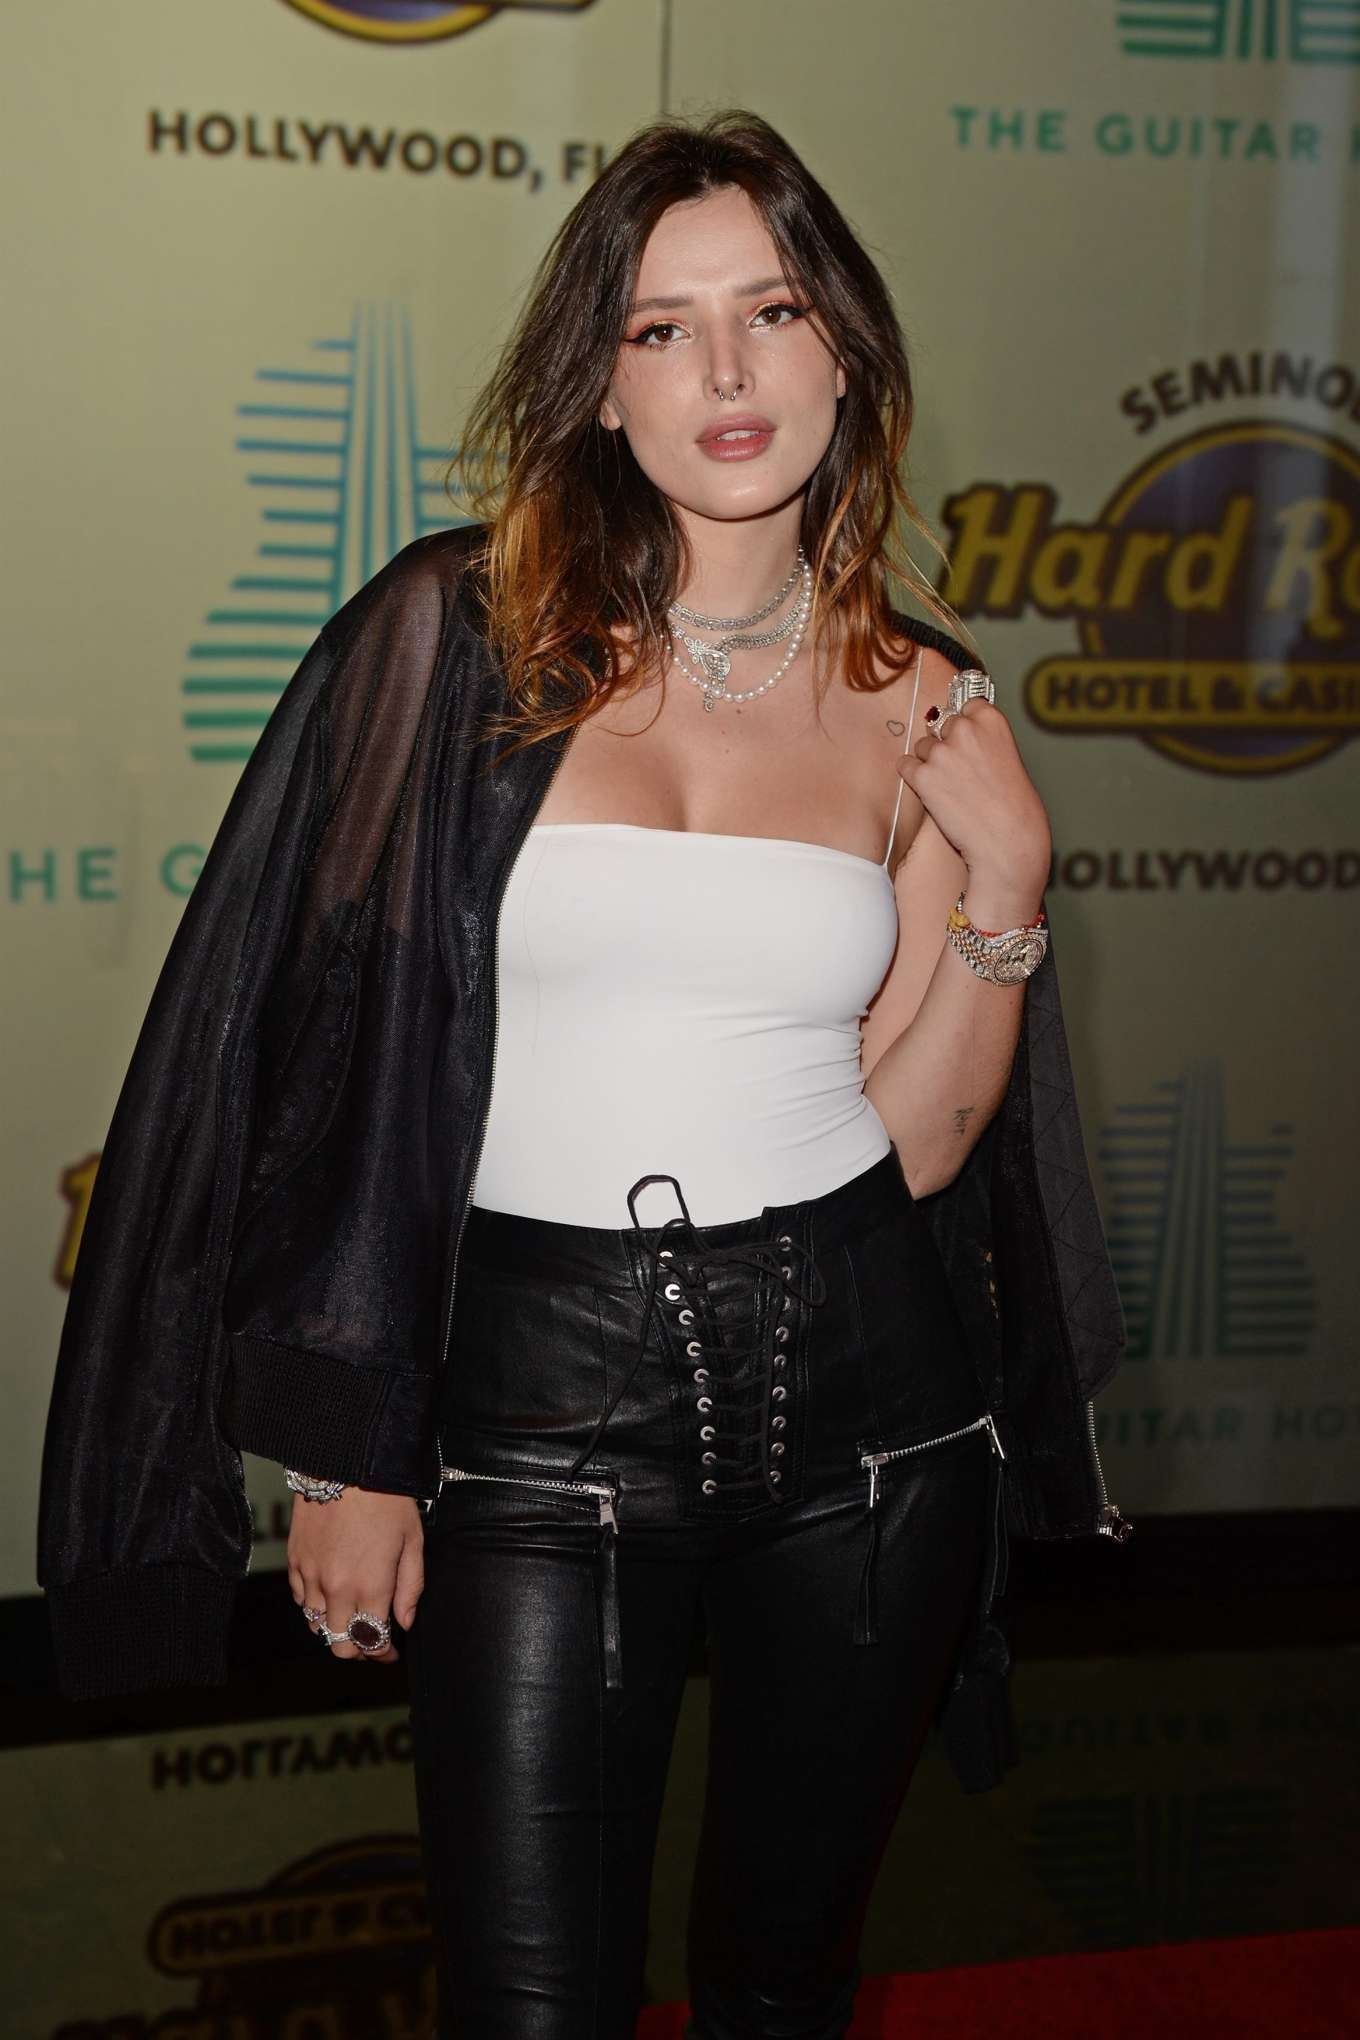 Bella Thorne - The Grand Opening of the Guitar Hotel in Hollywood